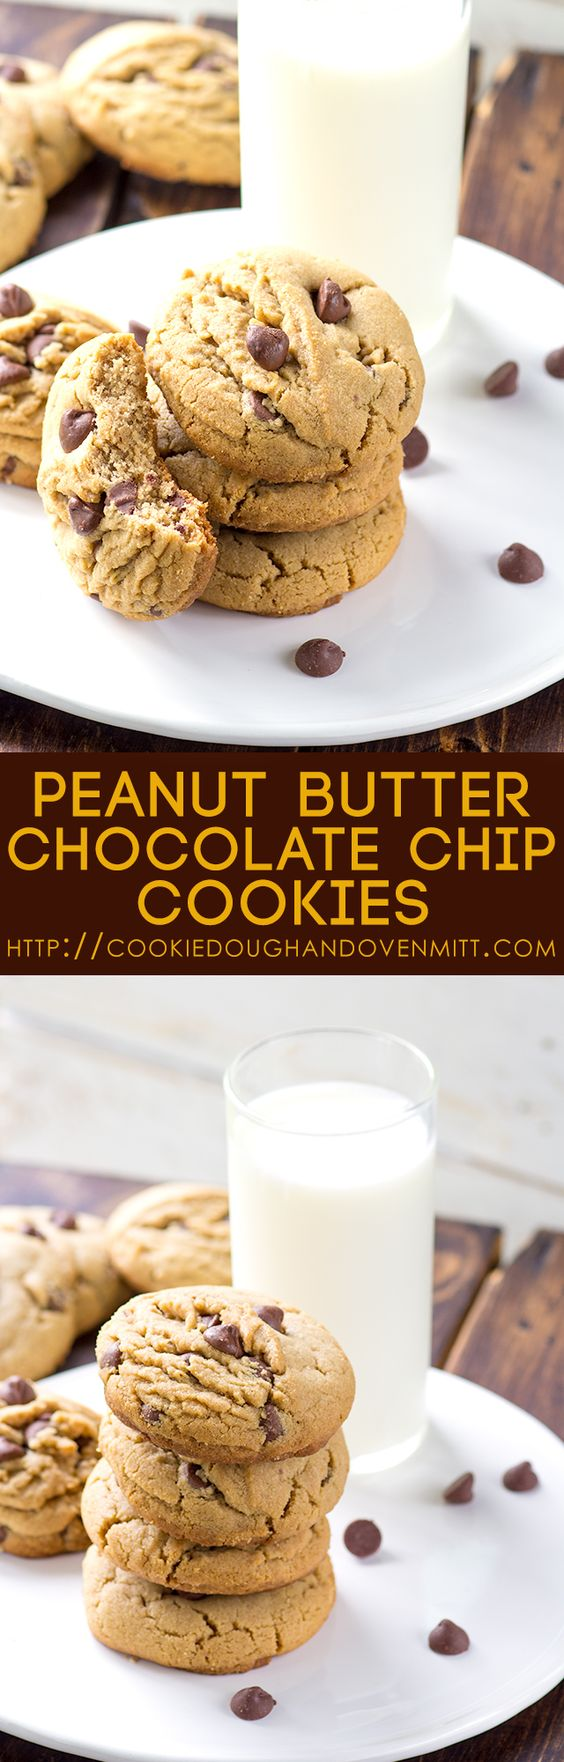 If you need a soft and thick cookie that's perfect for the holidays, these peanut butter chocolate chip cookies are perfect. They're amazing with coffee too